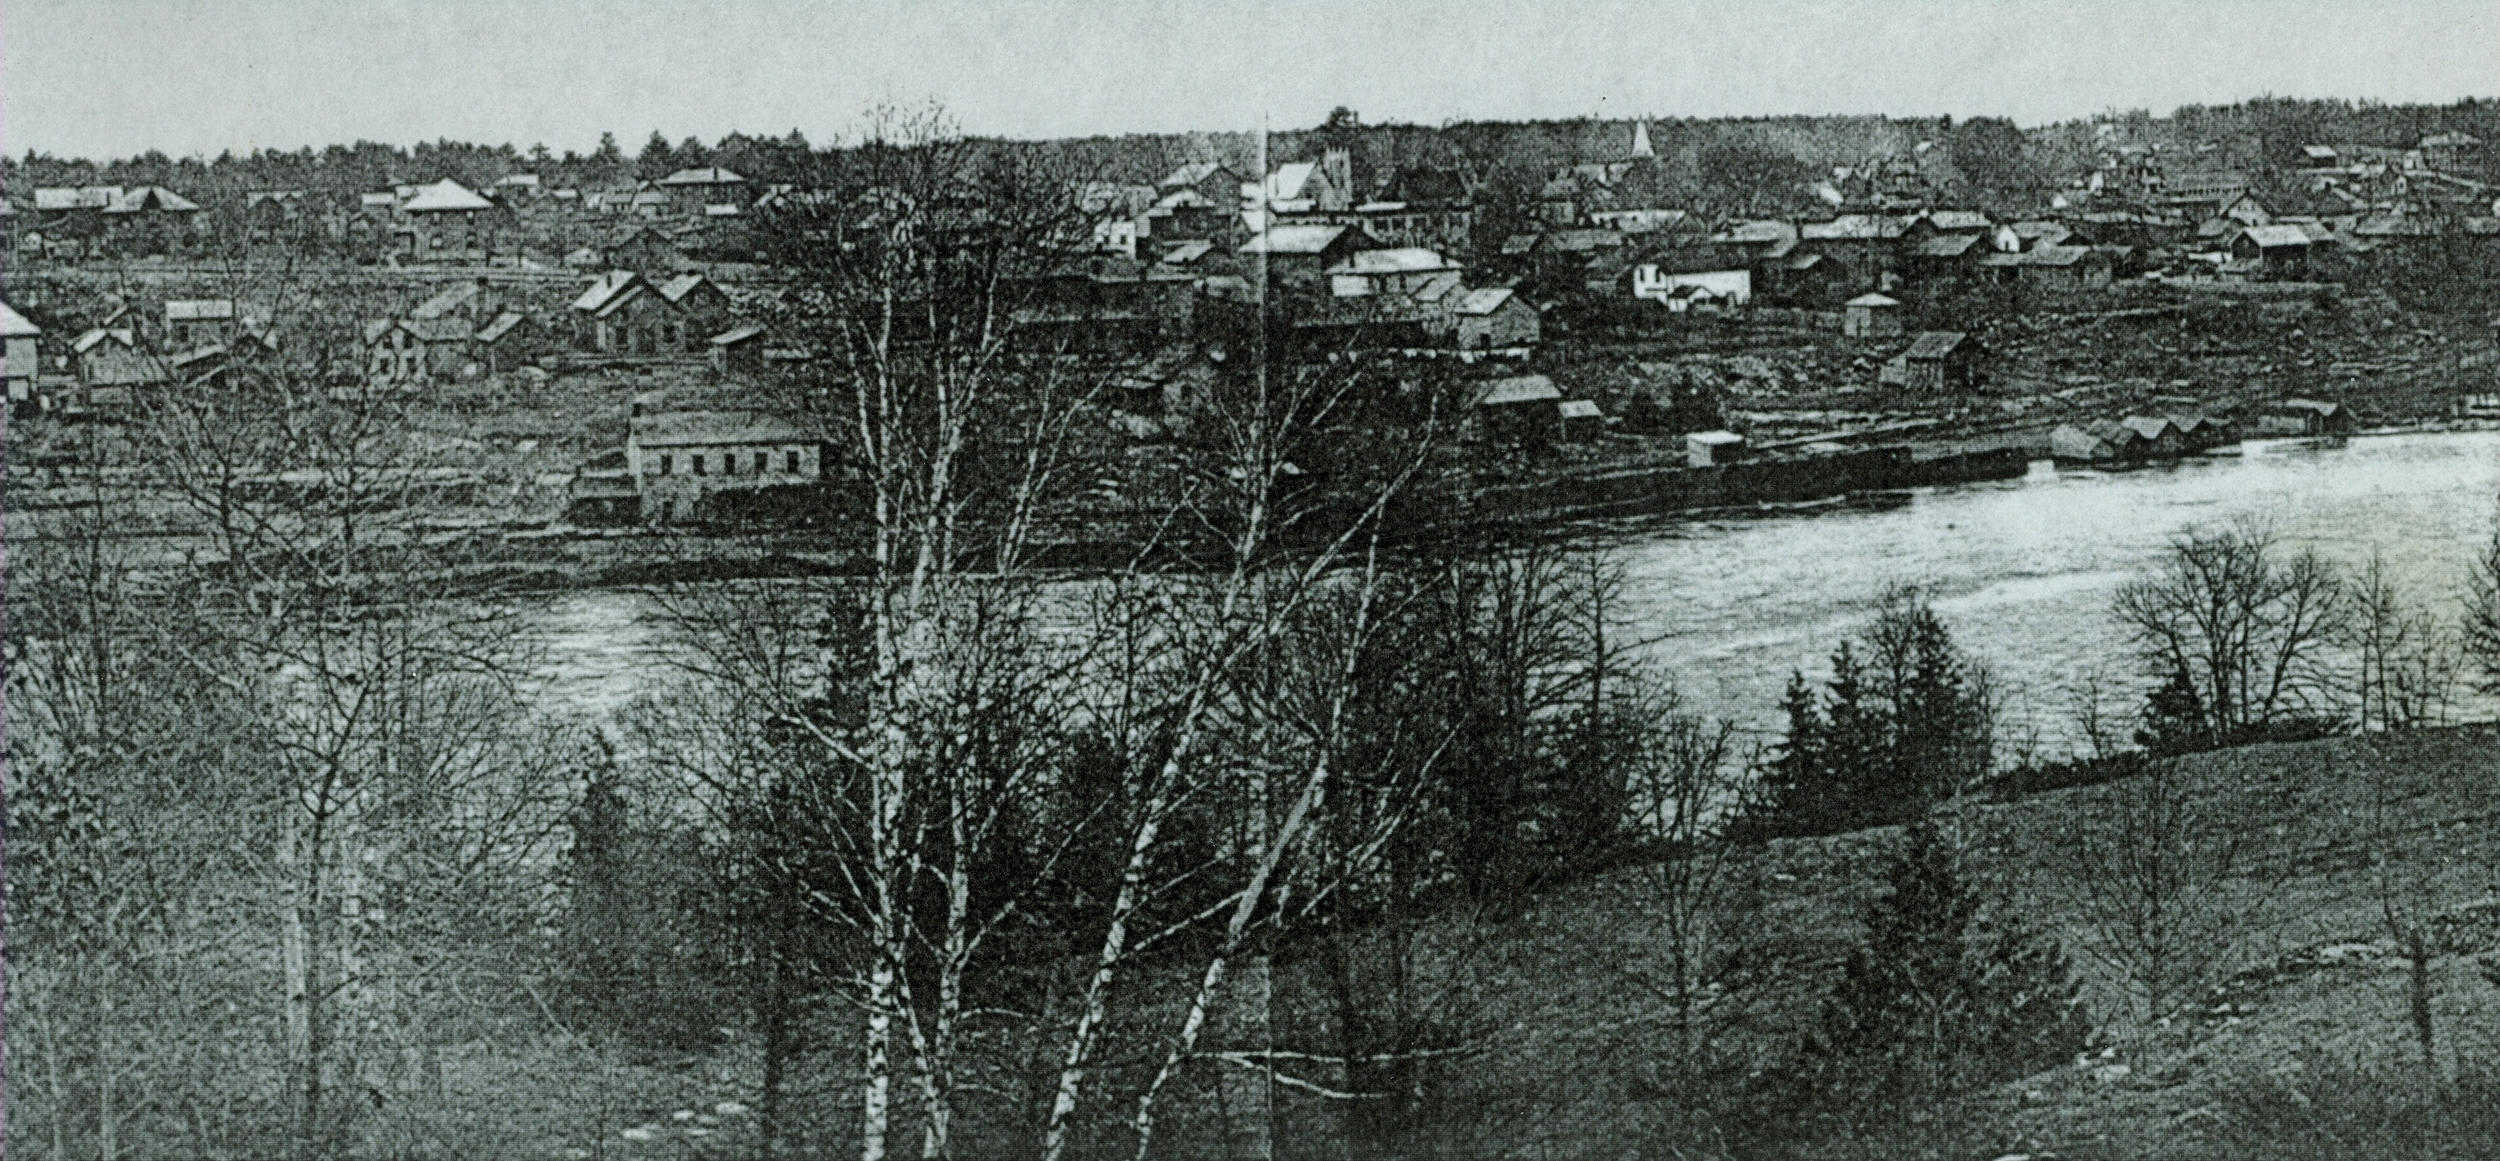 1920 View of the river looking east at the soap factory with its roof